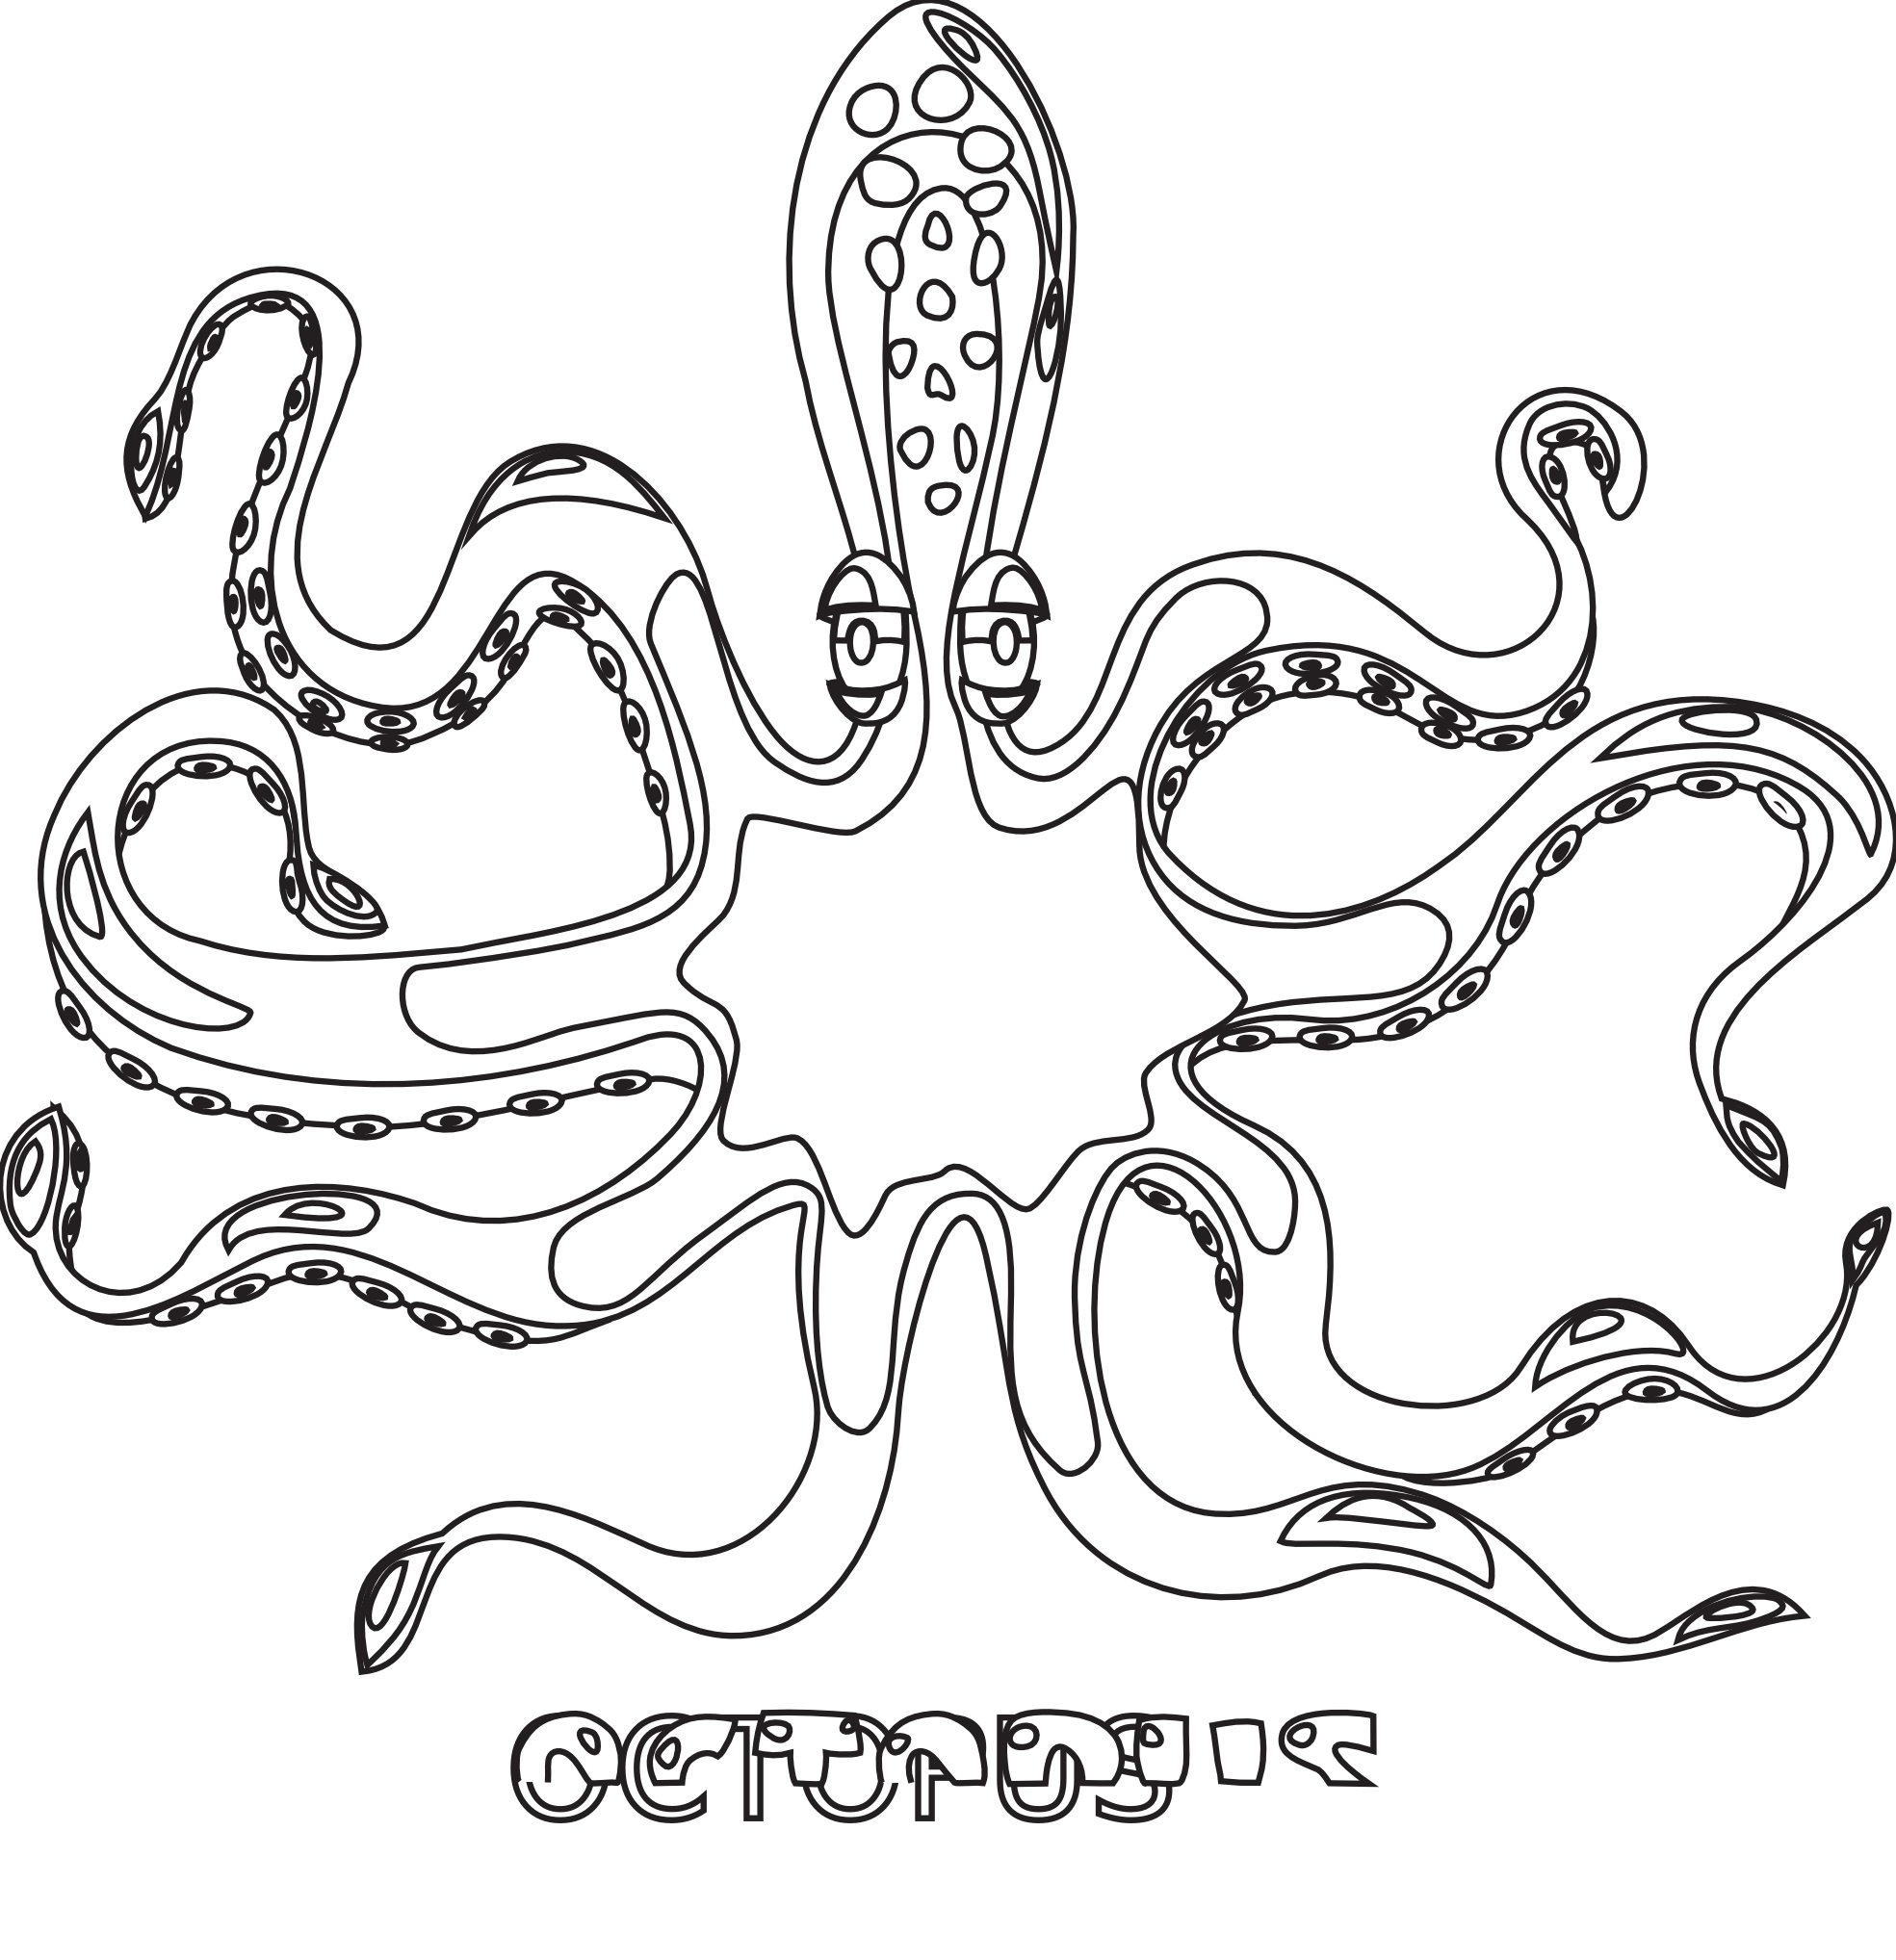 Octopus Black White Line Art Coloring Book Colouring Coloring Book